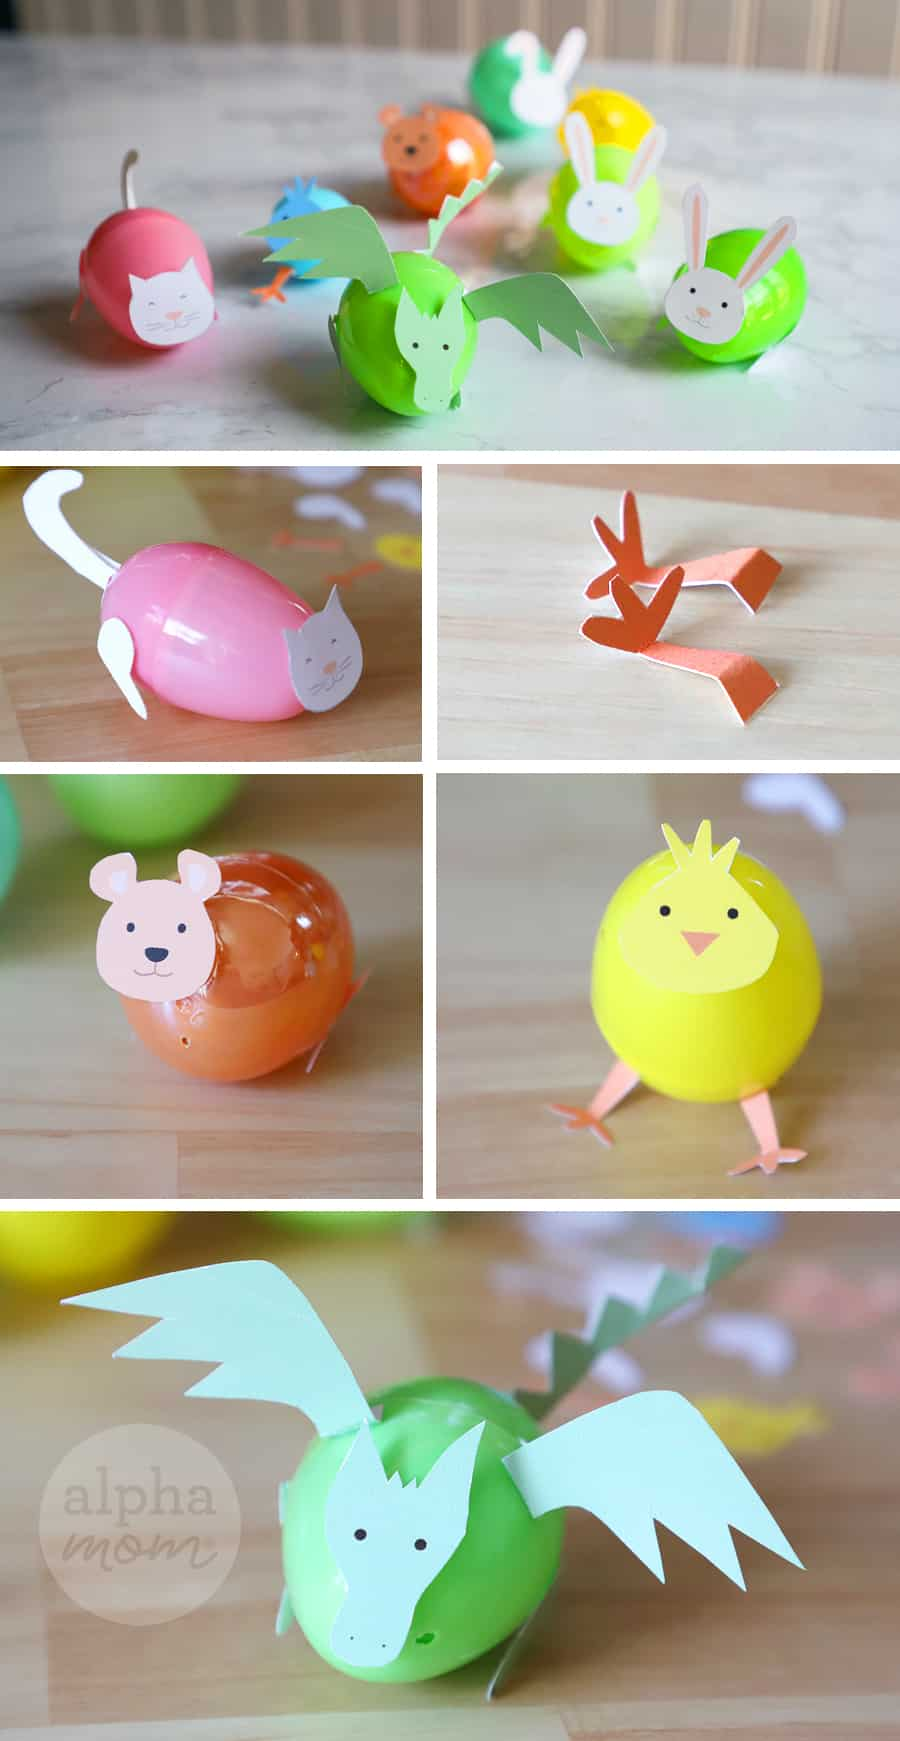 crafts of plastic Easter eggs transformed into little creatures